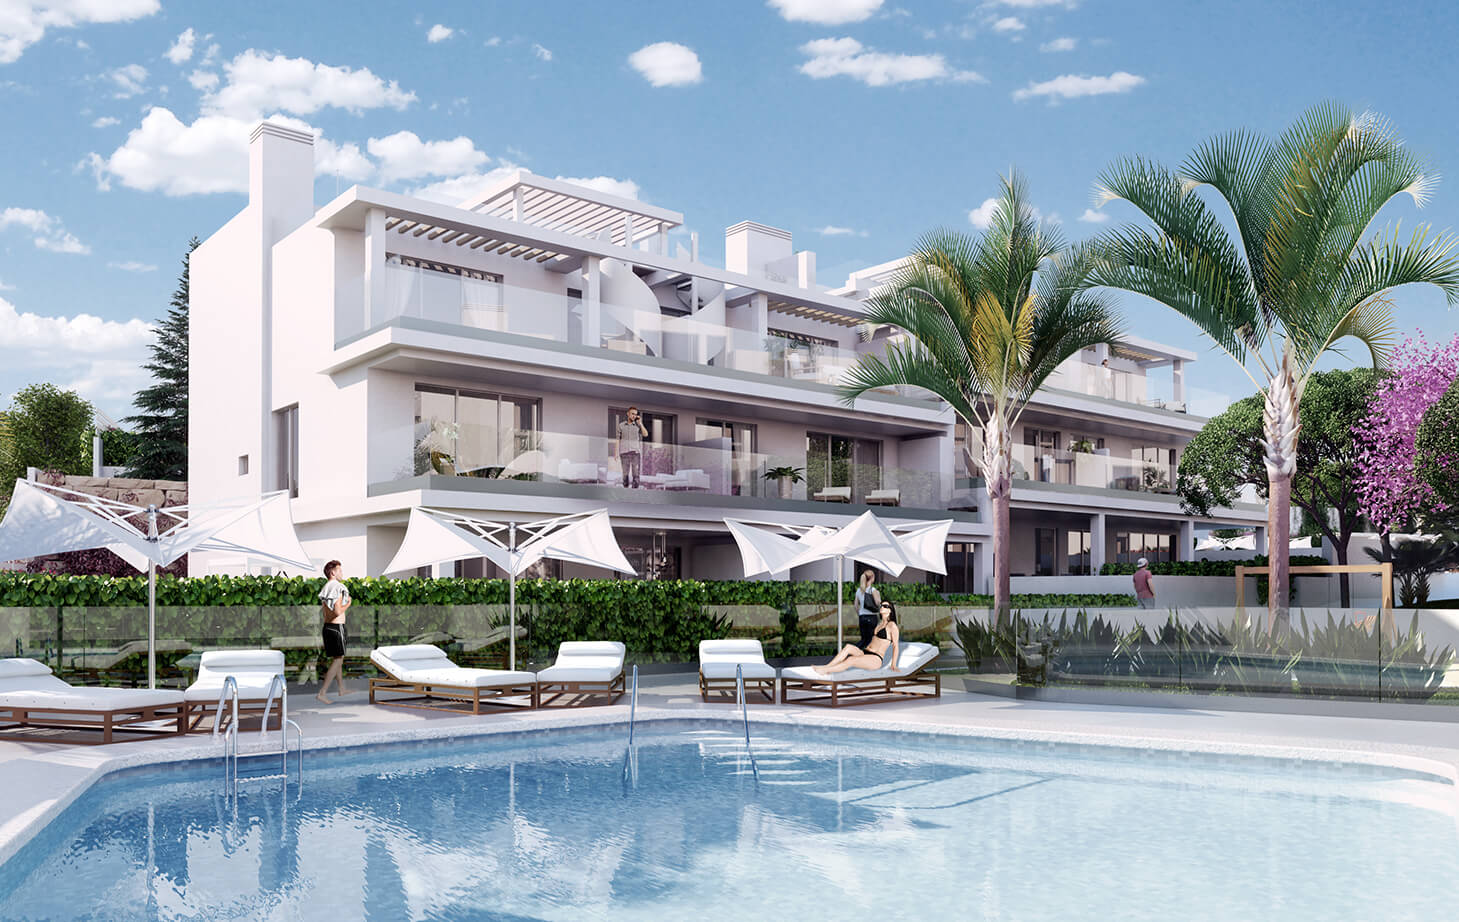 Apartments in Estepona MA6017191